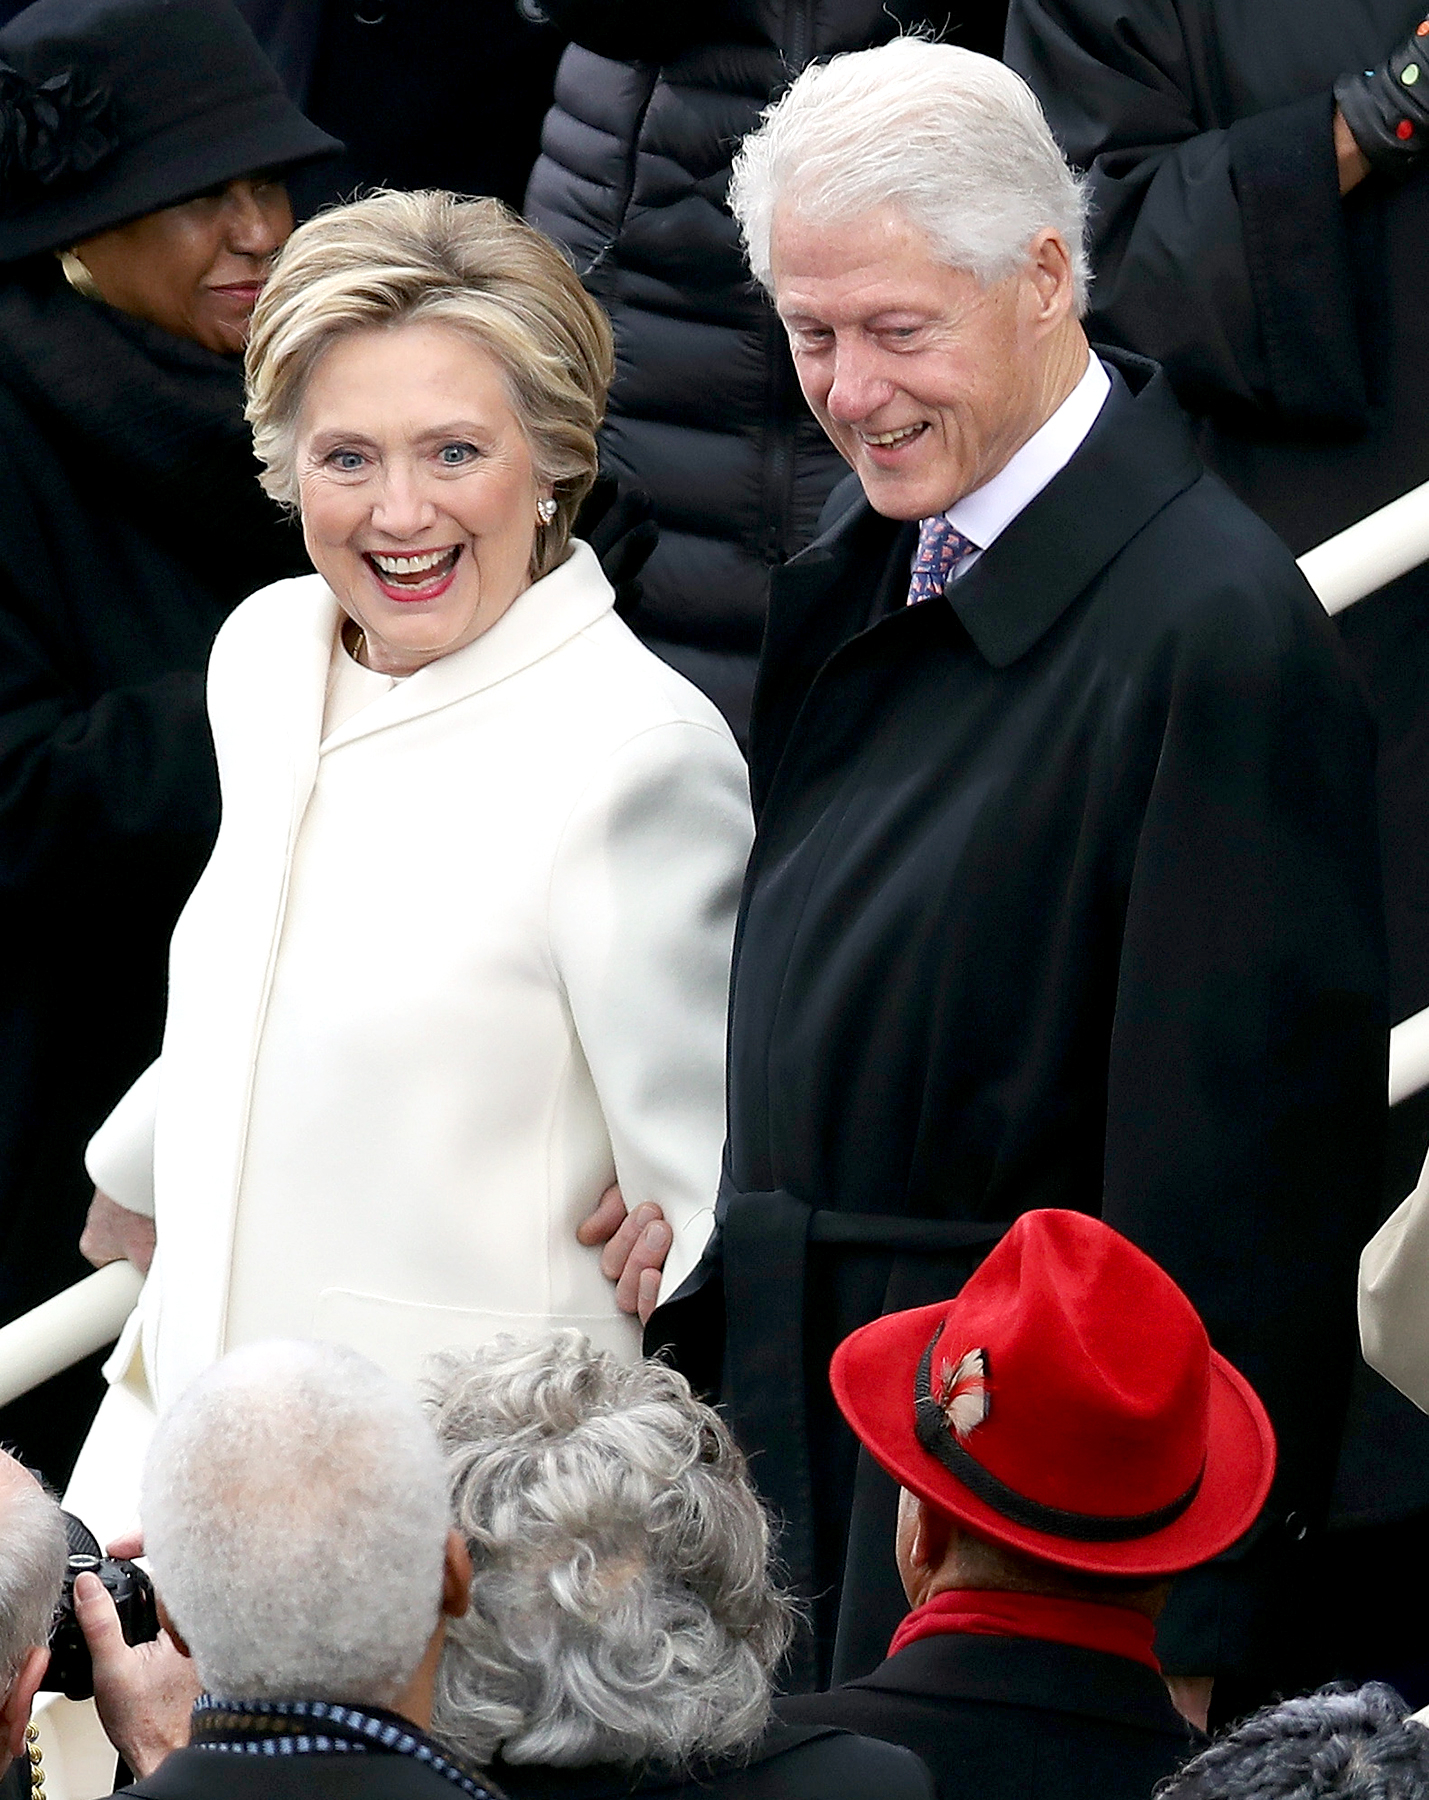 Hillary Clinton and Bill Clinton arrive on the West Front of the U.S. Capitol on January 20, 2017 in Washington, DC.